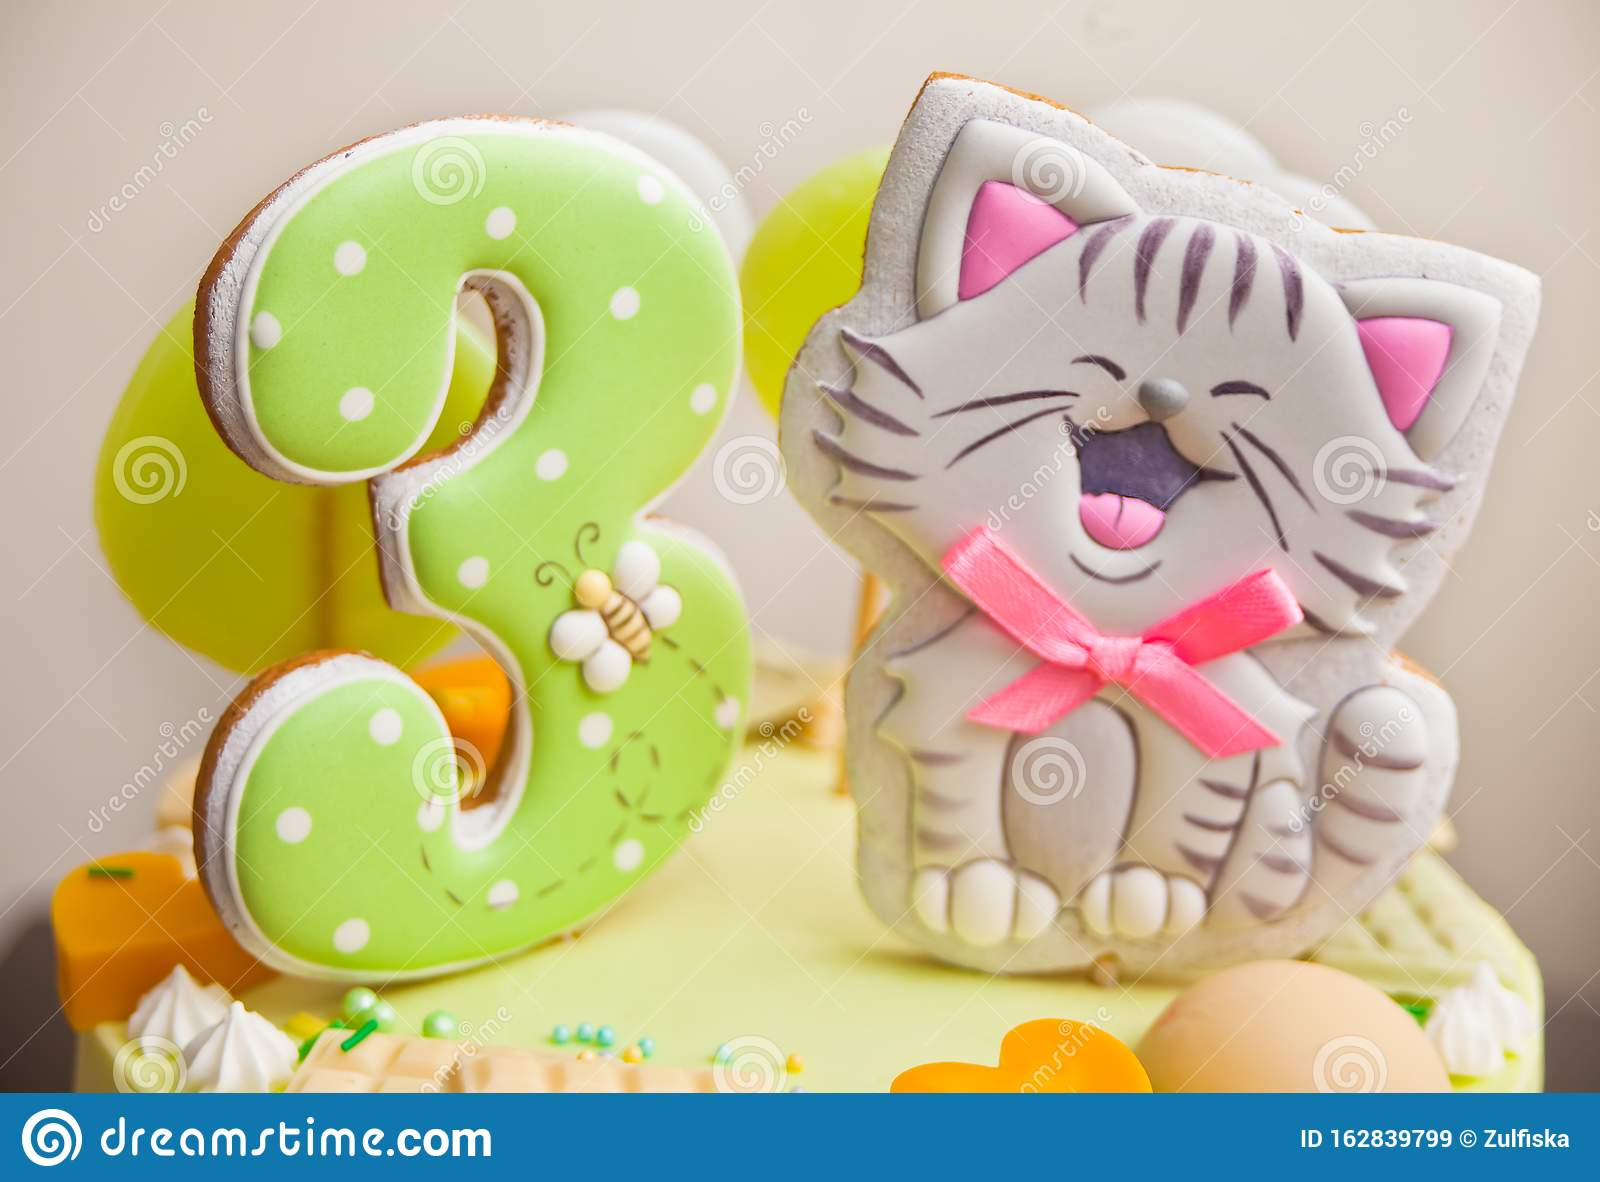 Fabulous Close Up Birthday Cake For Little Girl Decorated Funny Cookies Personalised Birthday Cards Bromeletsinfo